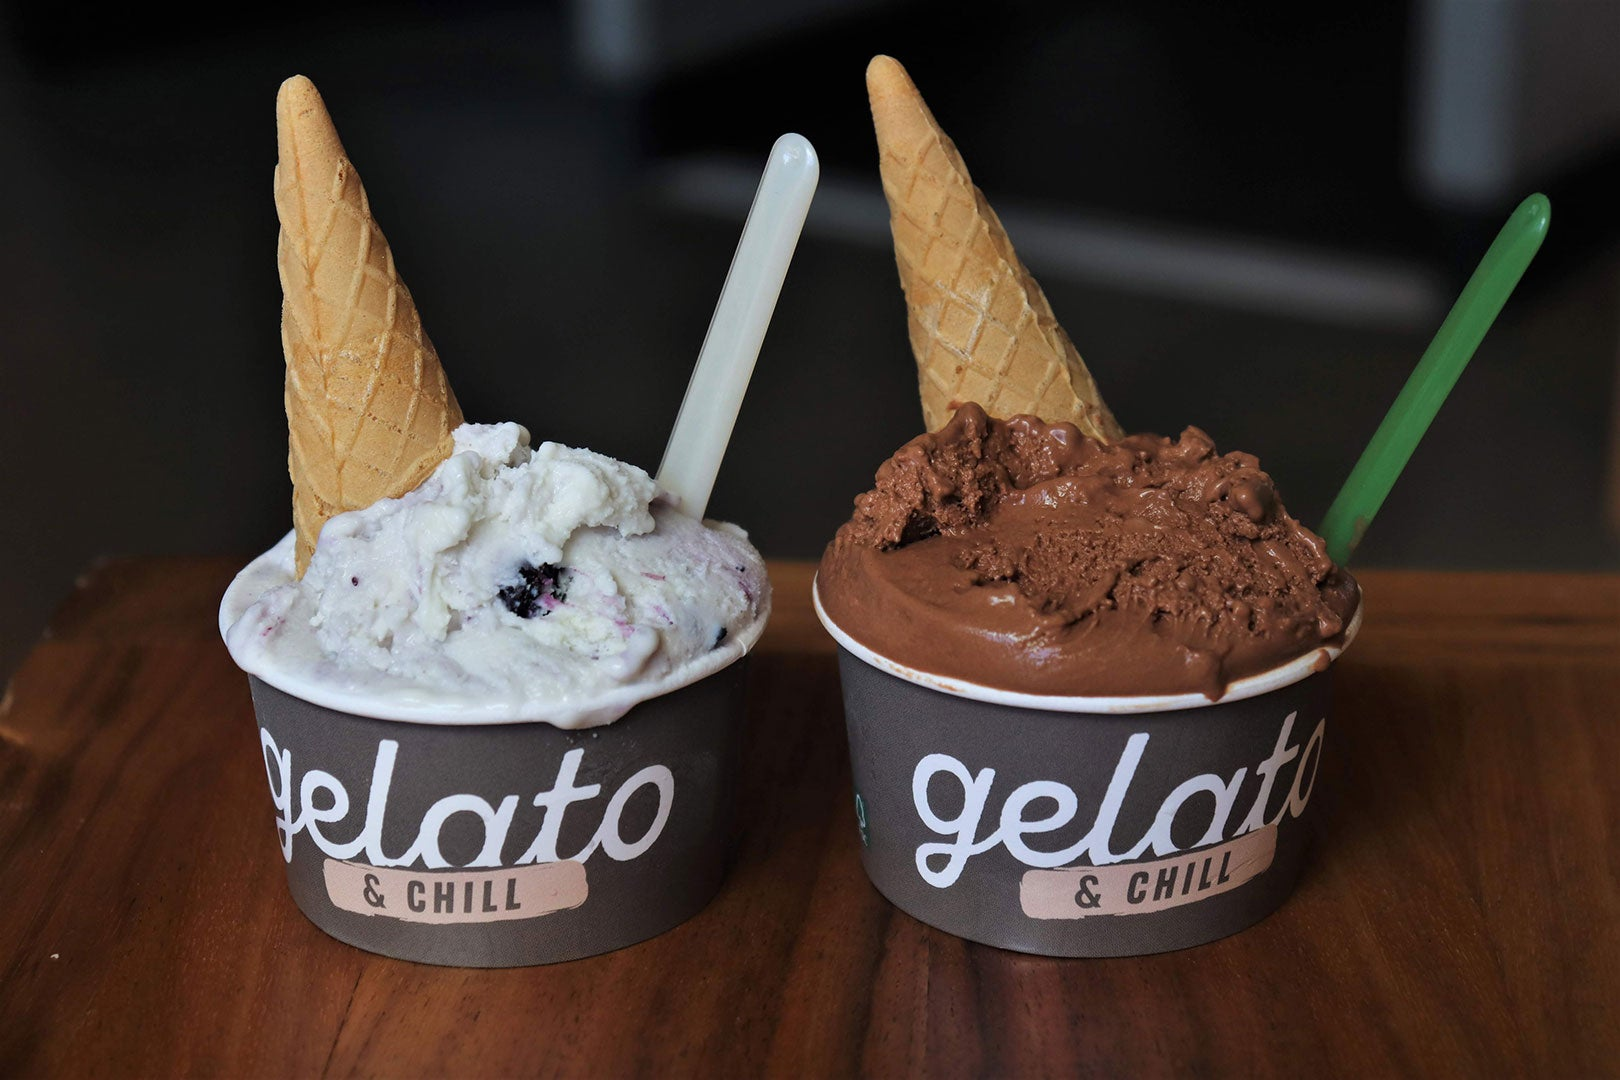 Gelato & Chill's ricotta with blueberries and cioccolato flavors at Time Out Market.